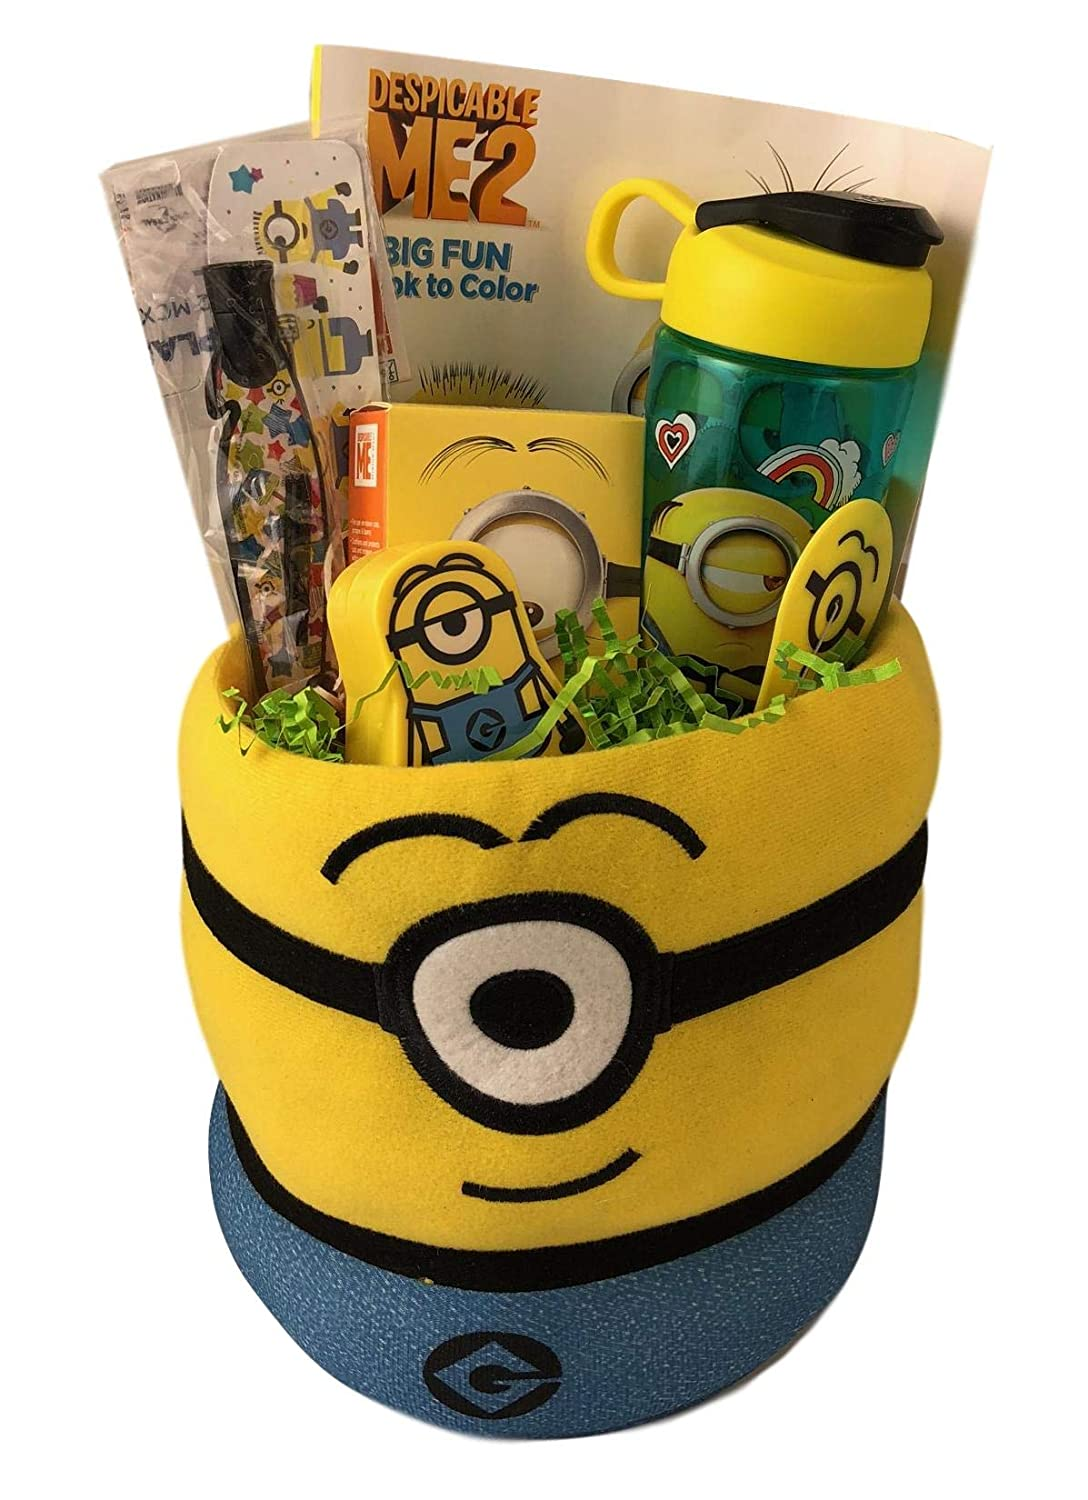 Amazon.com: Minion Sugar Free Easter Gift Basket for Kids Young Boys Girls Age 4 Up: Toys & Games